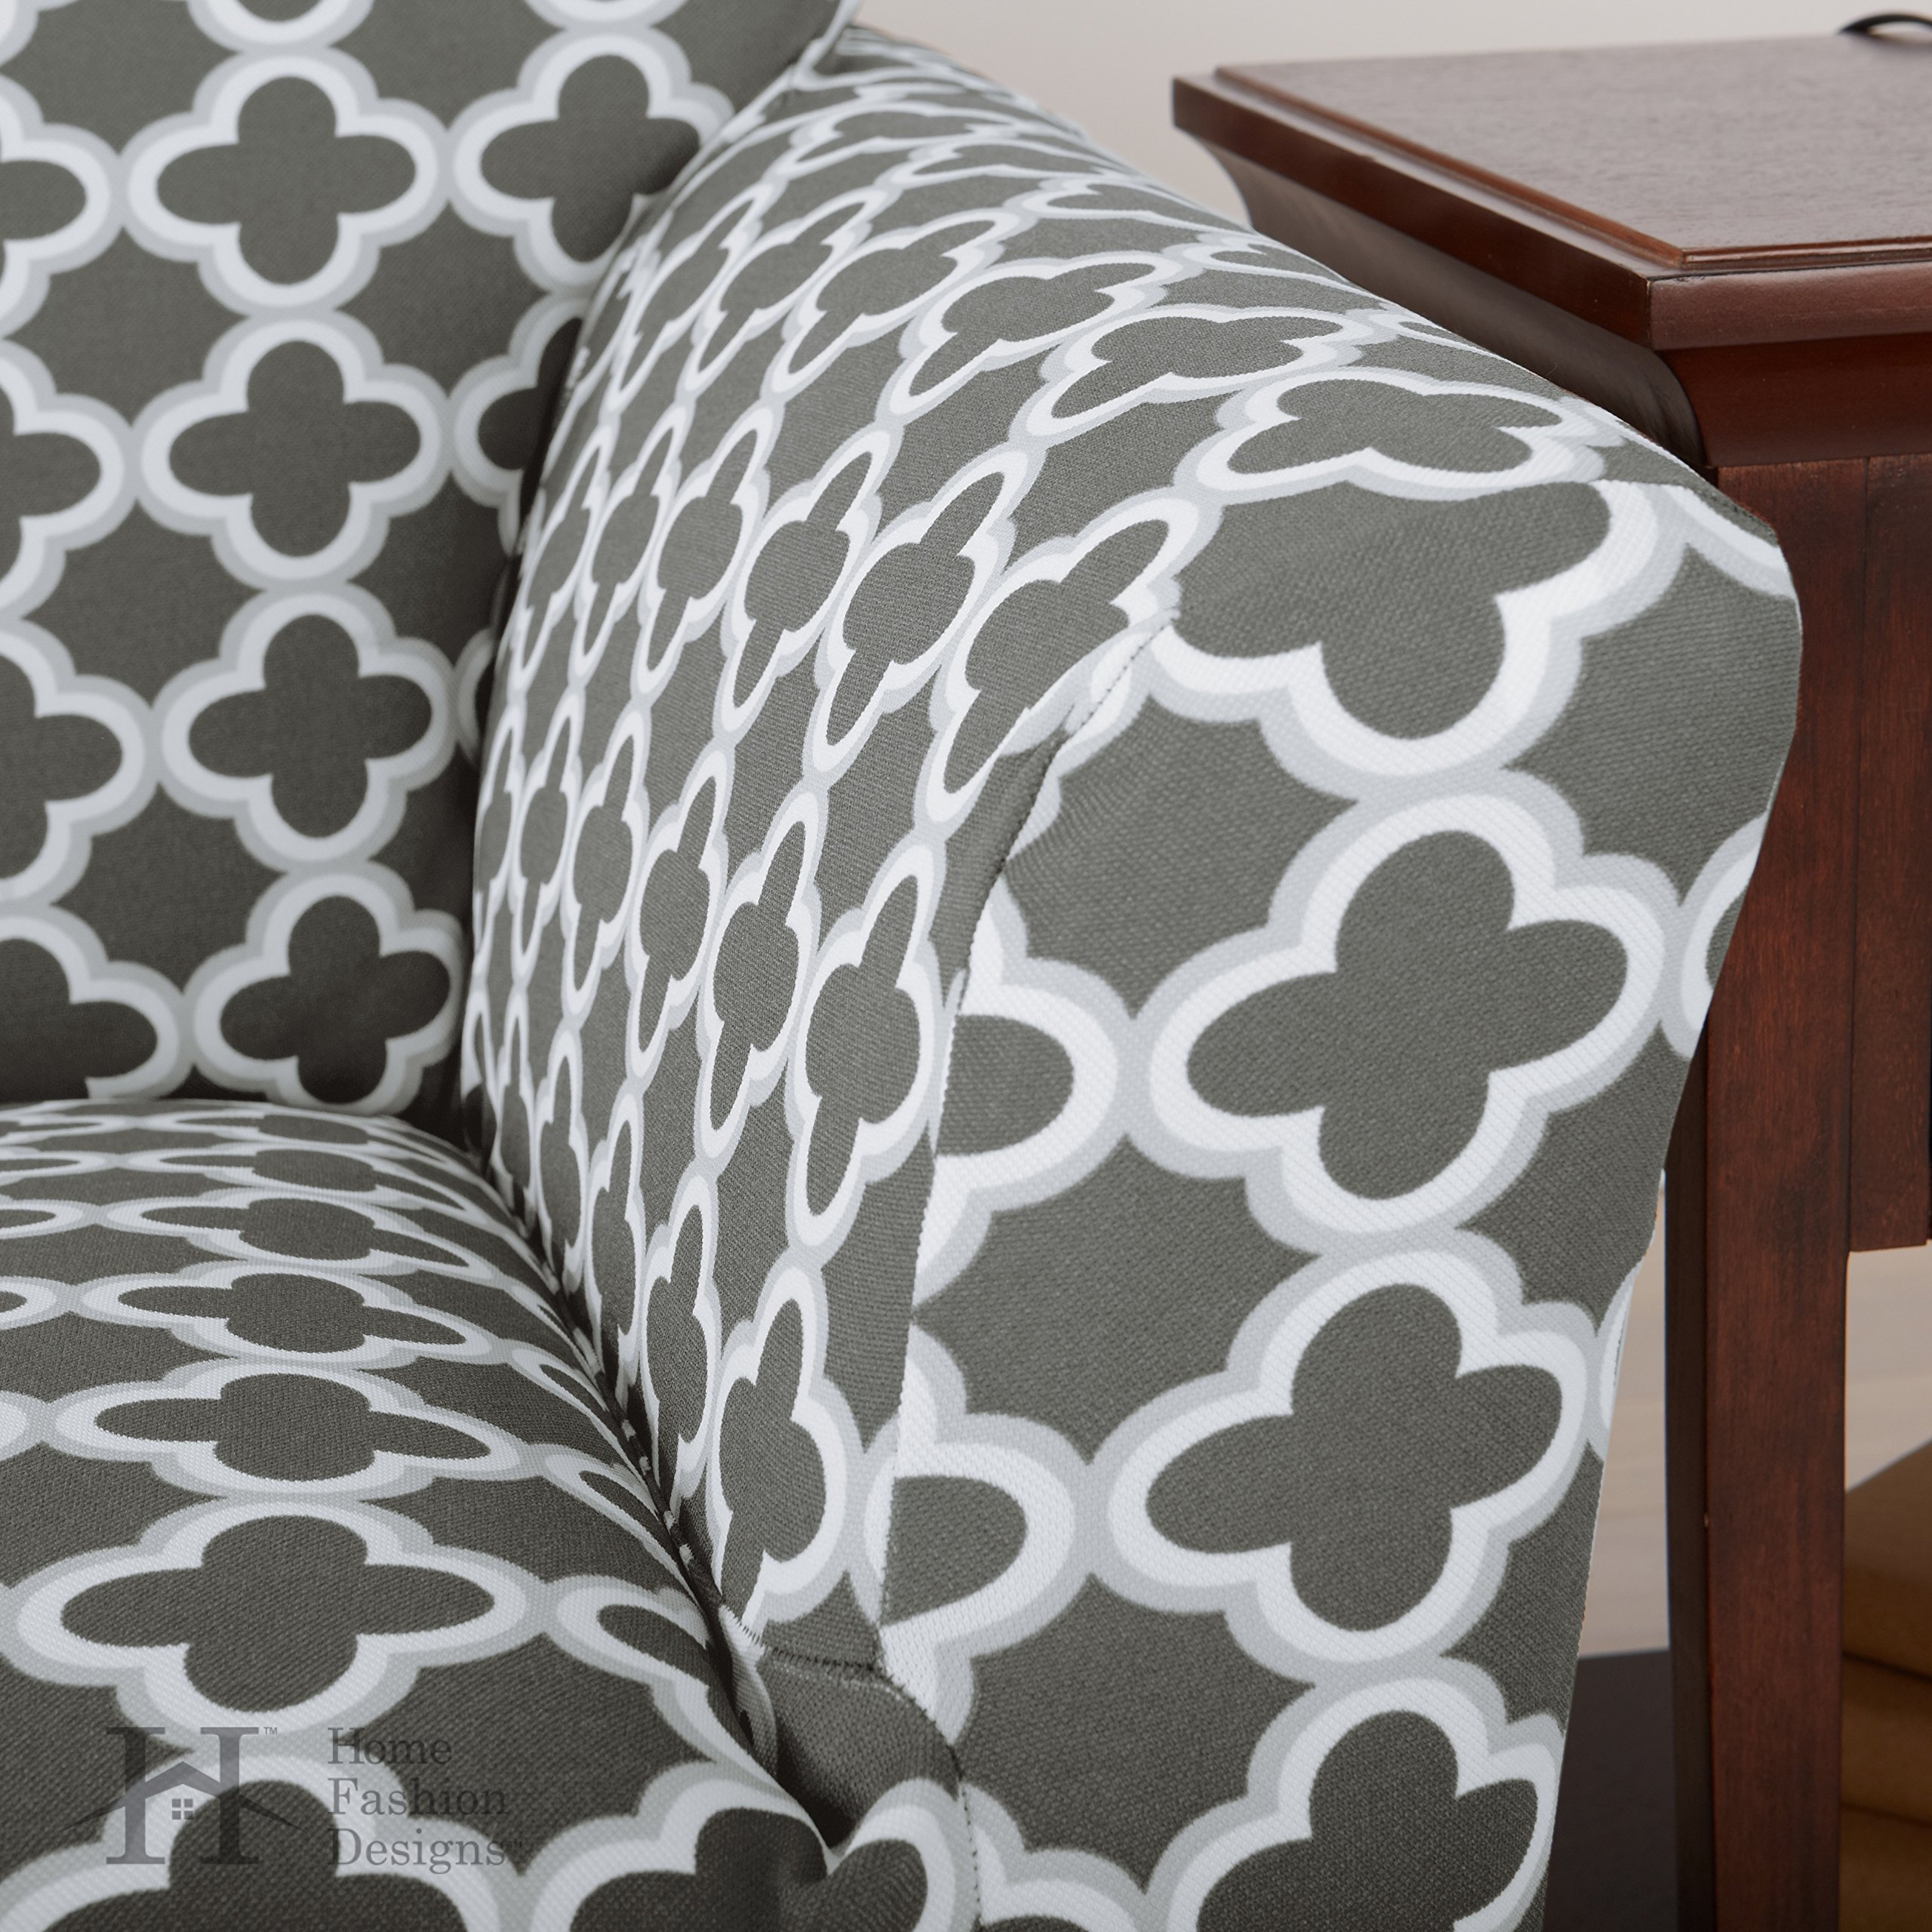 Home Fashion Designs Printed Twill Sofa Slipcover One Piece Stretch Couch Cover Strapless Sofa Cover For Living Room Brenna Collection Slipcover Sofa Catalog Furniture